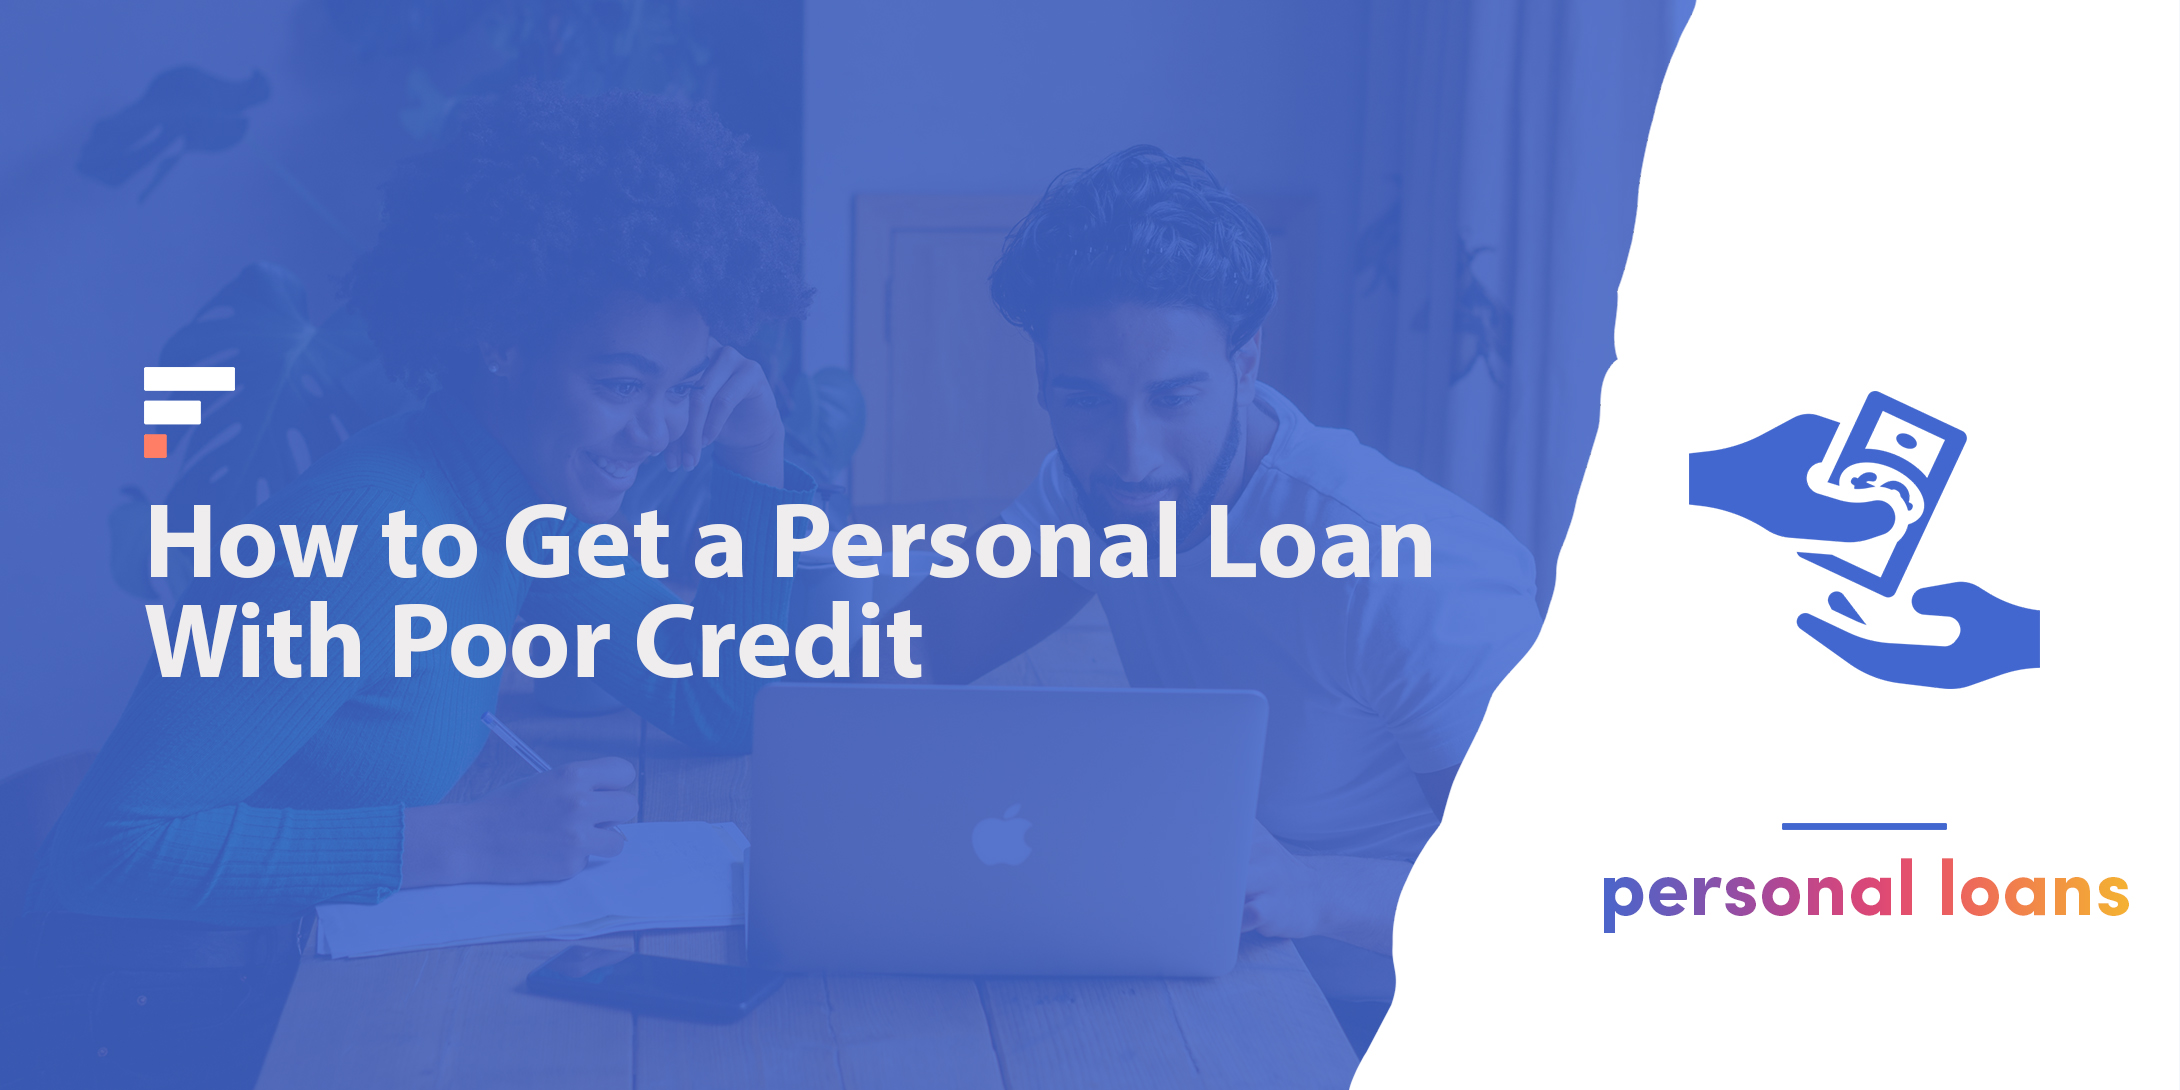 How to Get a Personal Loan With Poor Credit (450-579 Credit Score)